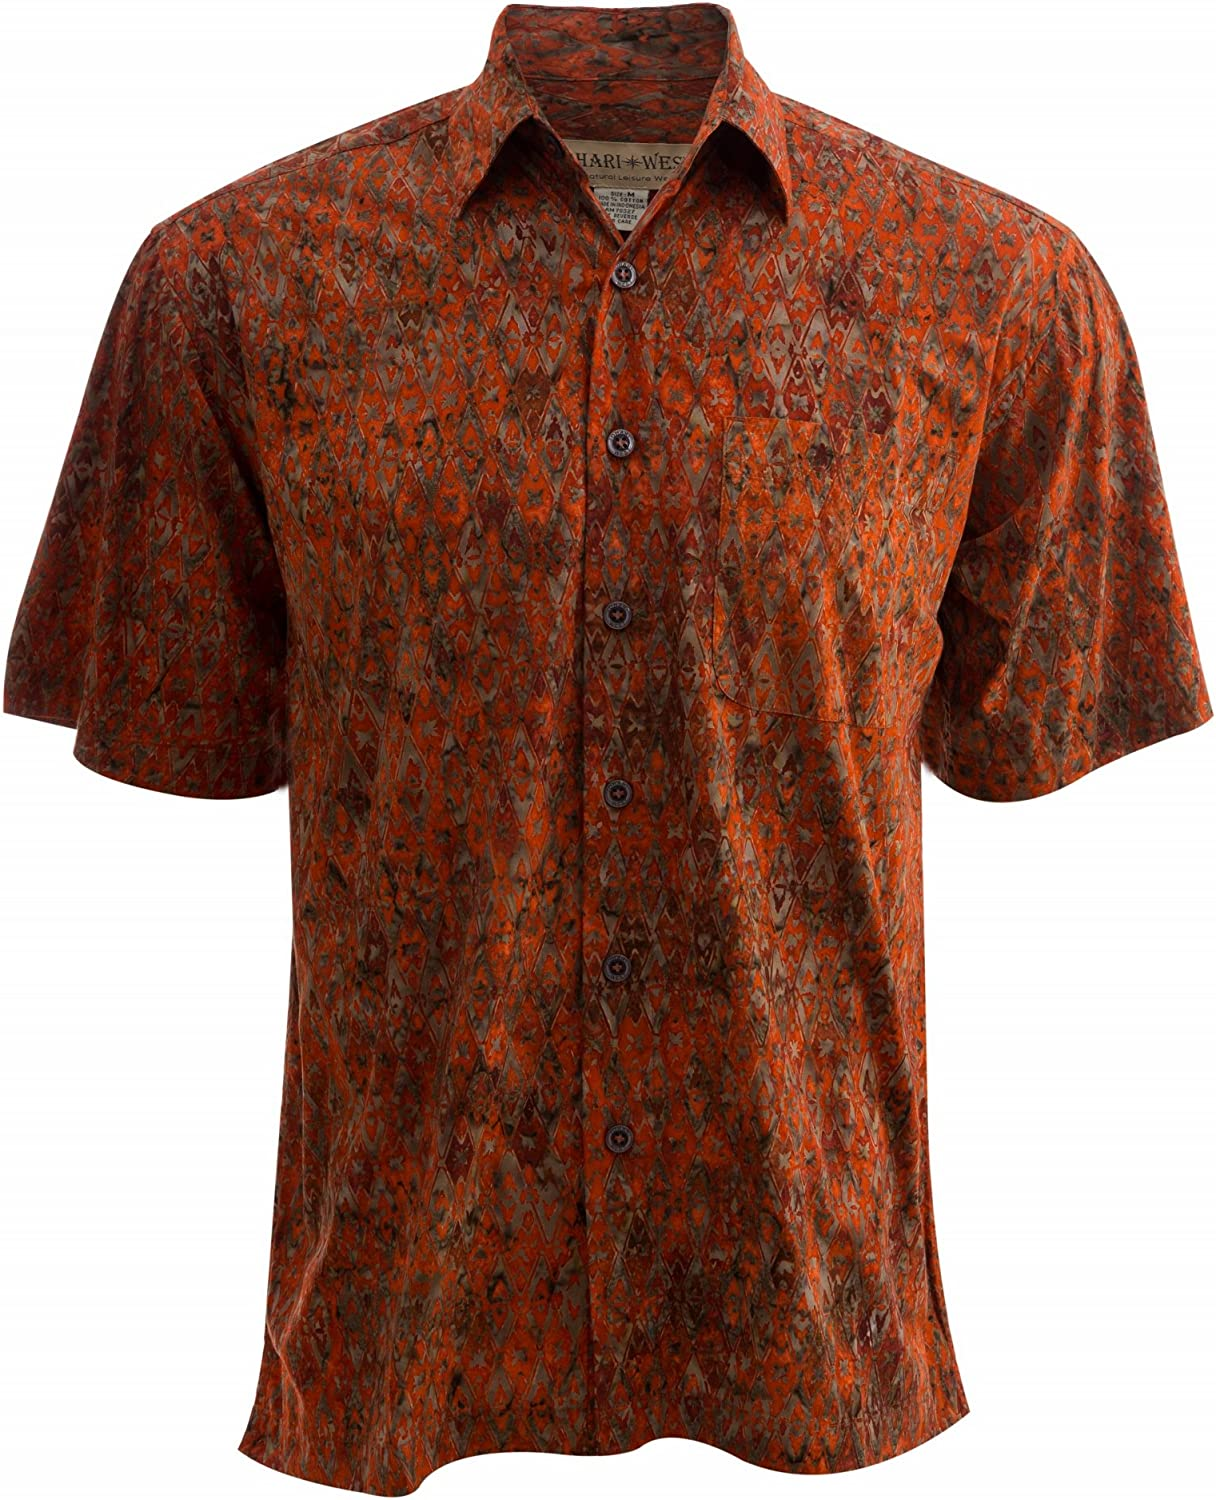 Johari West Fire Diamonds Tropical Hawaiian Cotton Batik Shirt